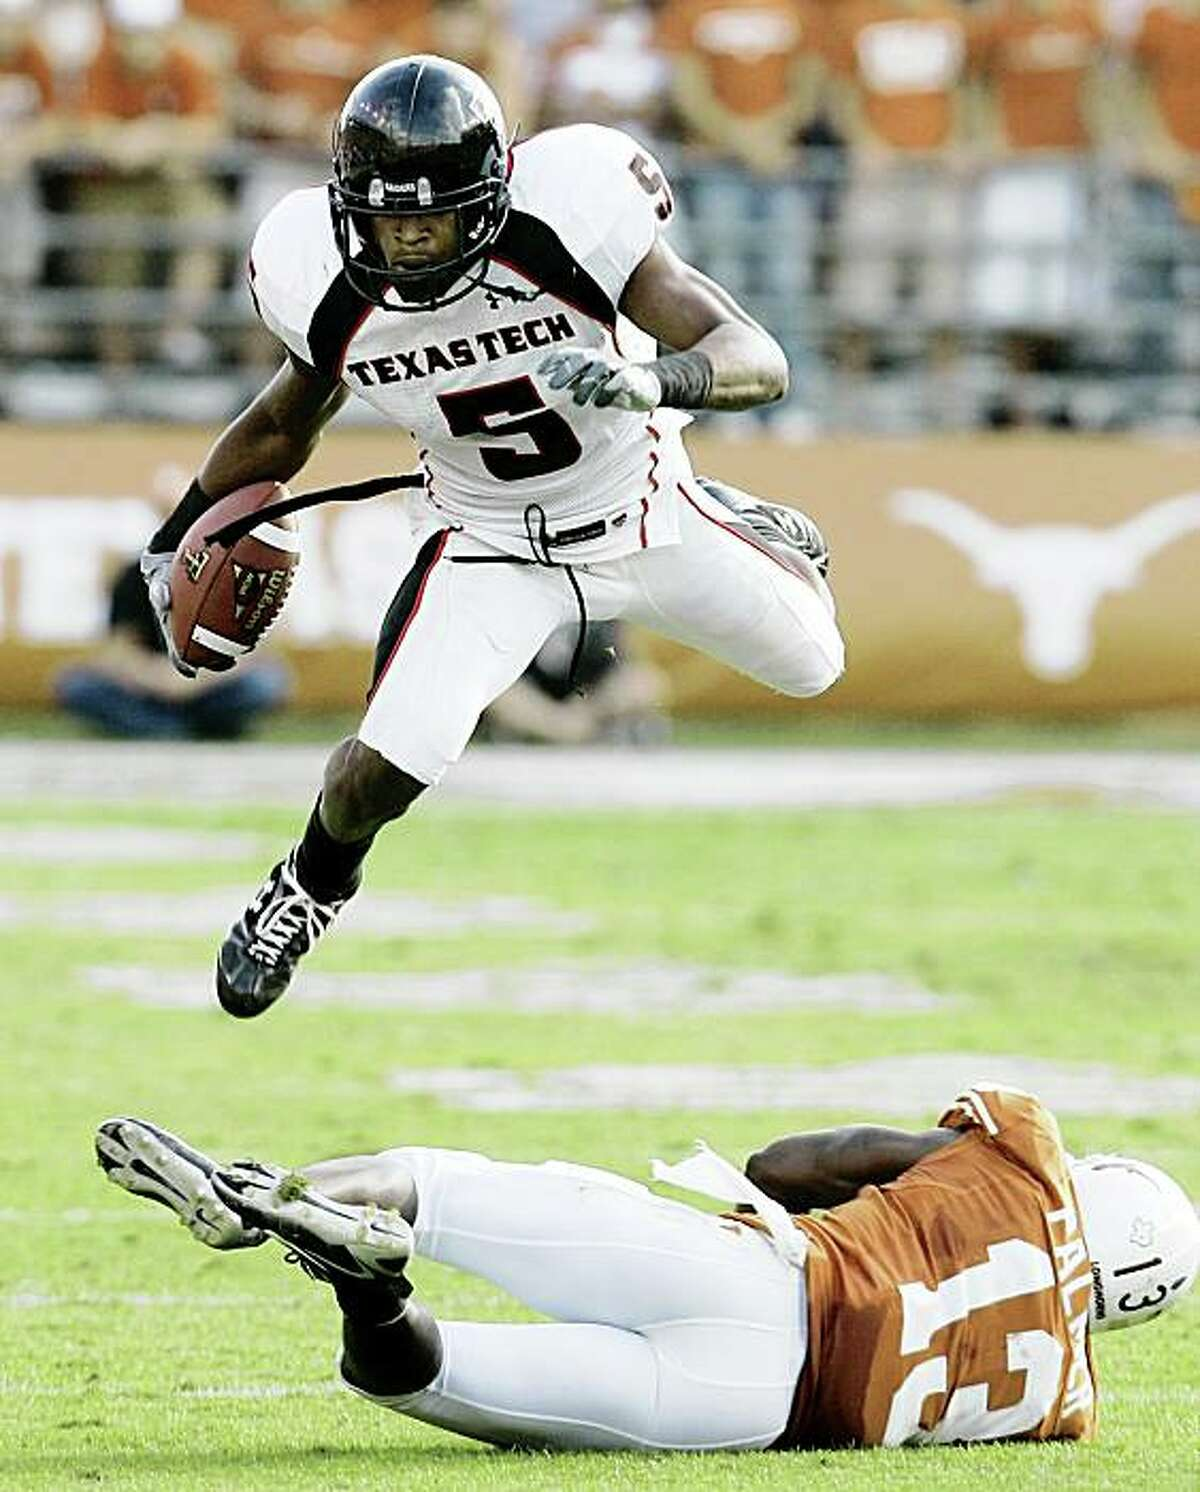 ** FOR USE AS DESIRED WITH NFL DRAFT STORIES ** FILE - In this Nov. 10, 2007 file photo, Texas Tech wide receiver Michael Crabtree (5) leaps over Texas defender Ryan Palmer (13) during the second quarter of an NCAA college football game in Austin, Texas. Crabtree is a top prospect in the 2009 NFL Draft. (AP Photo/Eric Gay, File)